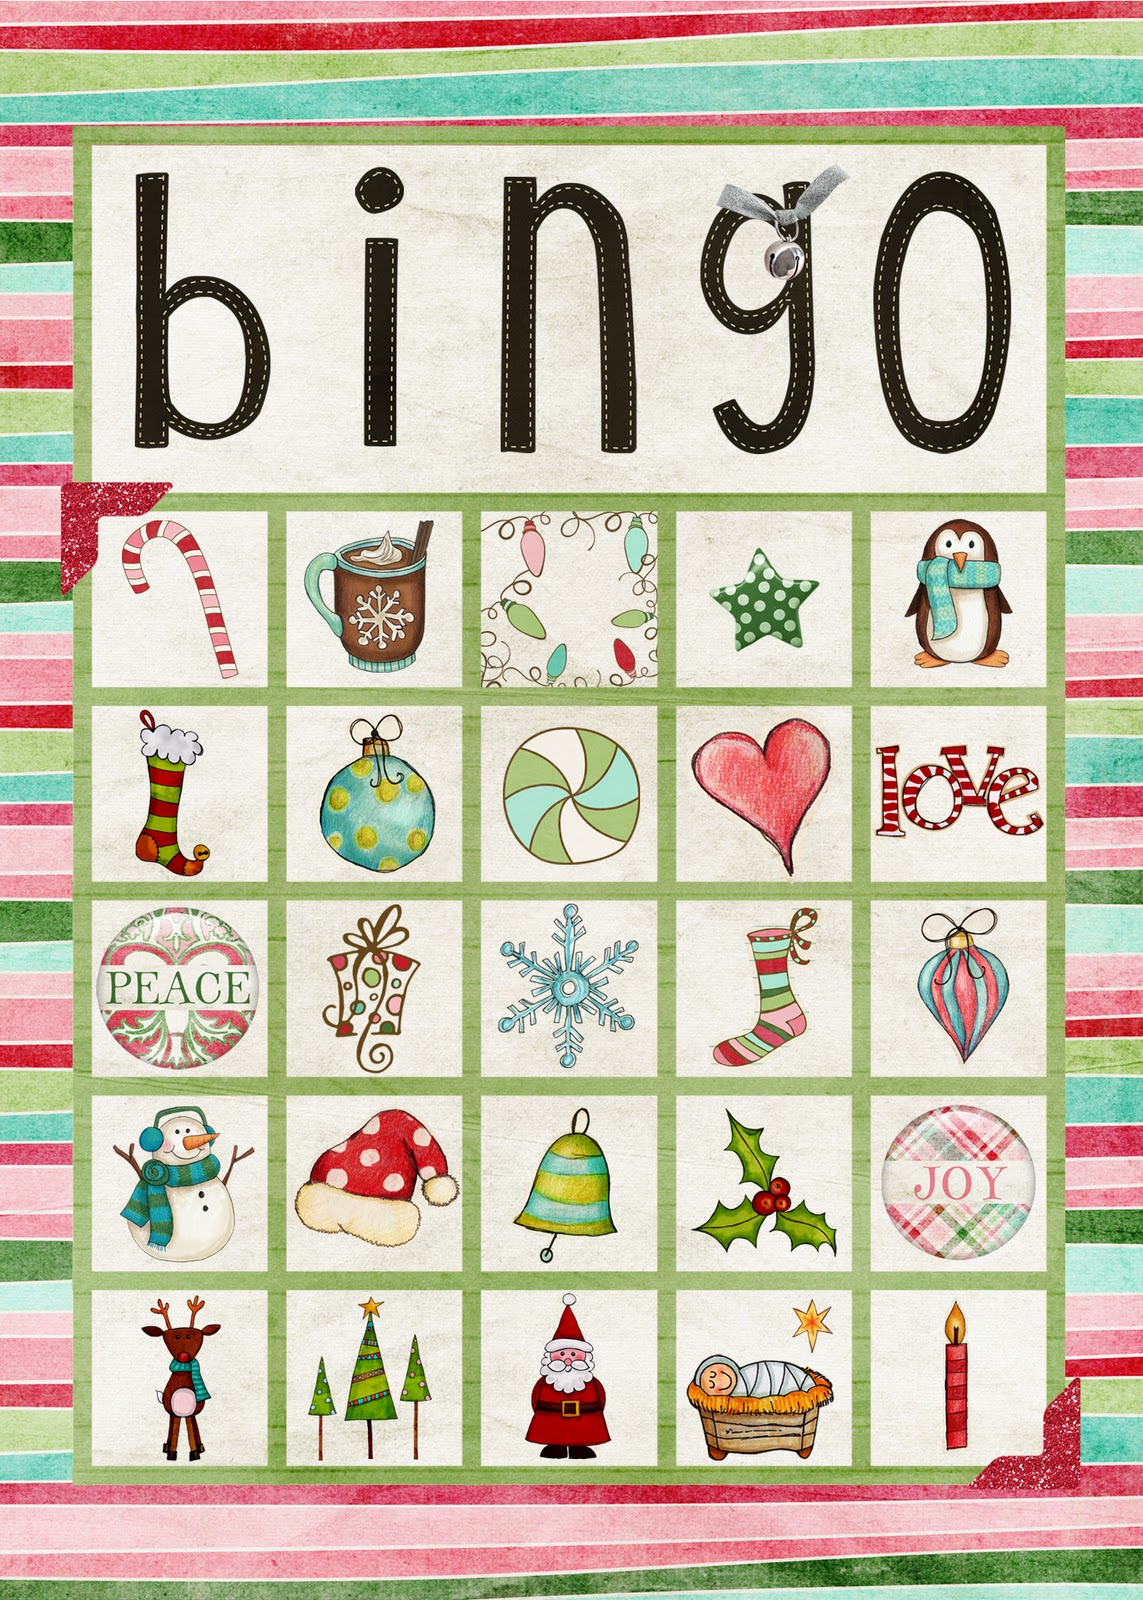 Free Printable Christmas Bingo Cards For Large Groups - Printable Cards - Free Printable Christmas Bingo